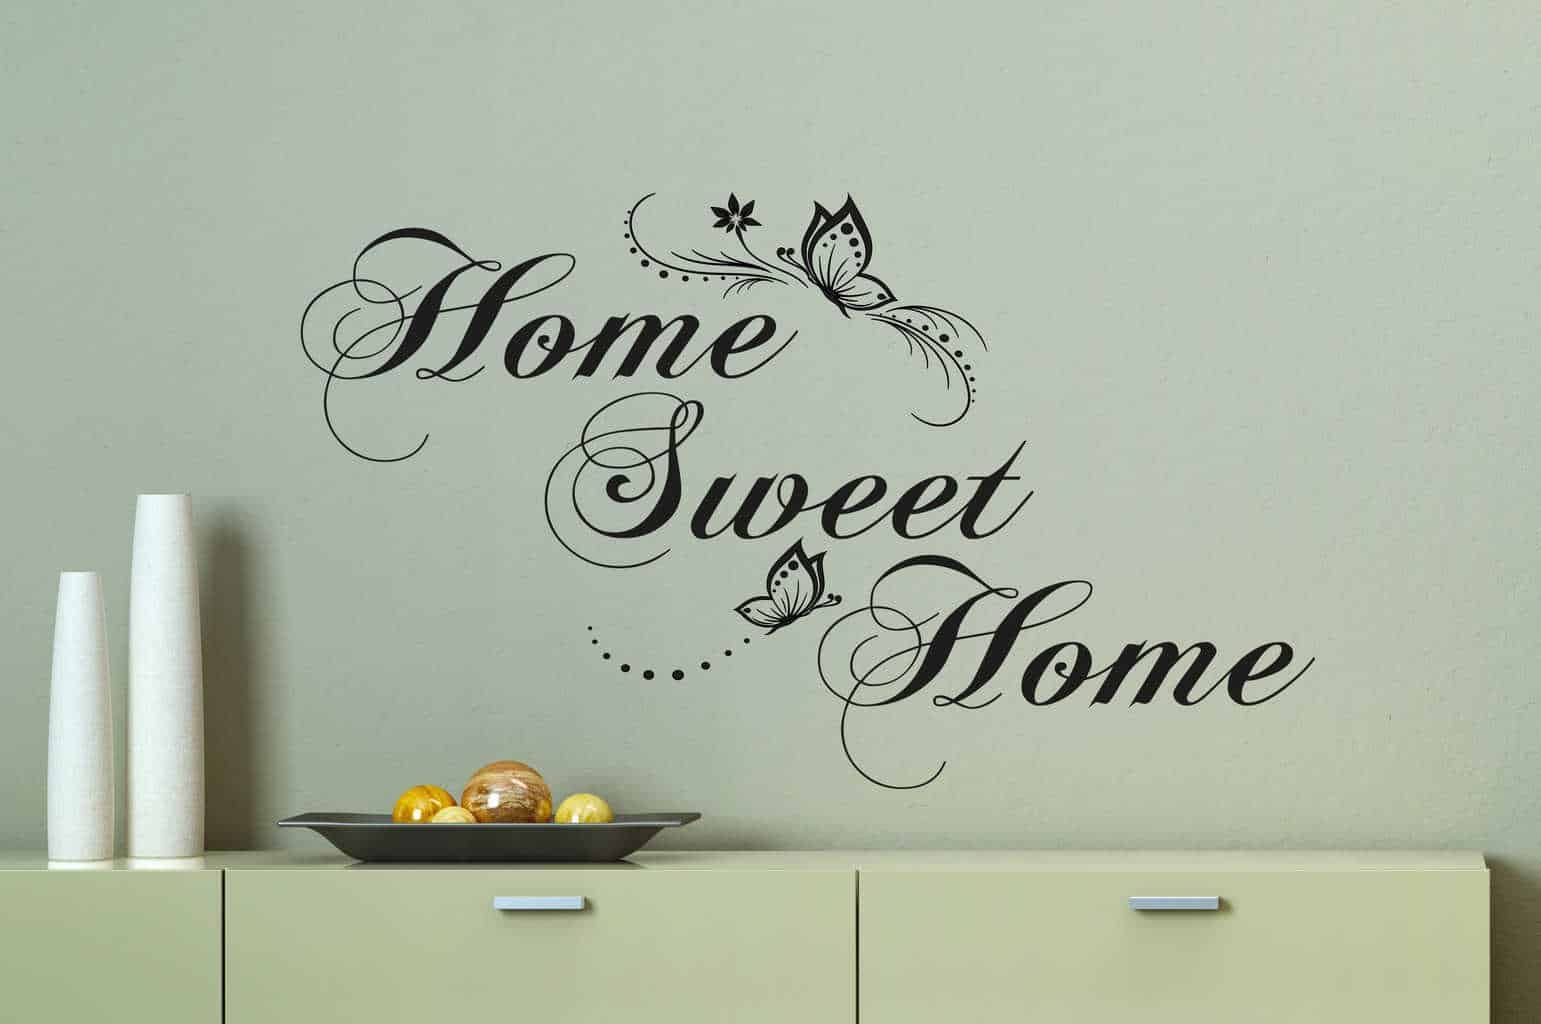 home sweet home butterfly wall decal sticker by ey decals. Black Bedroom Furniture Sets. Home Design Ideas